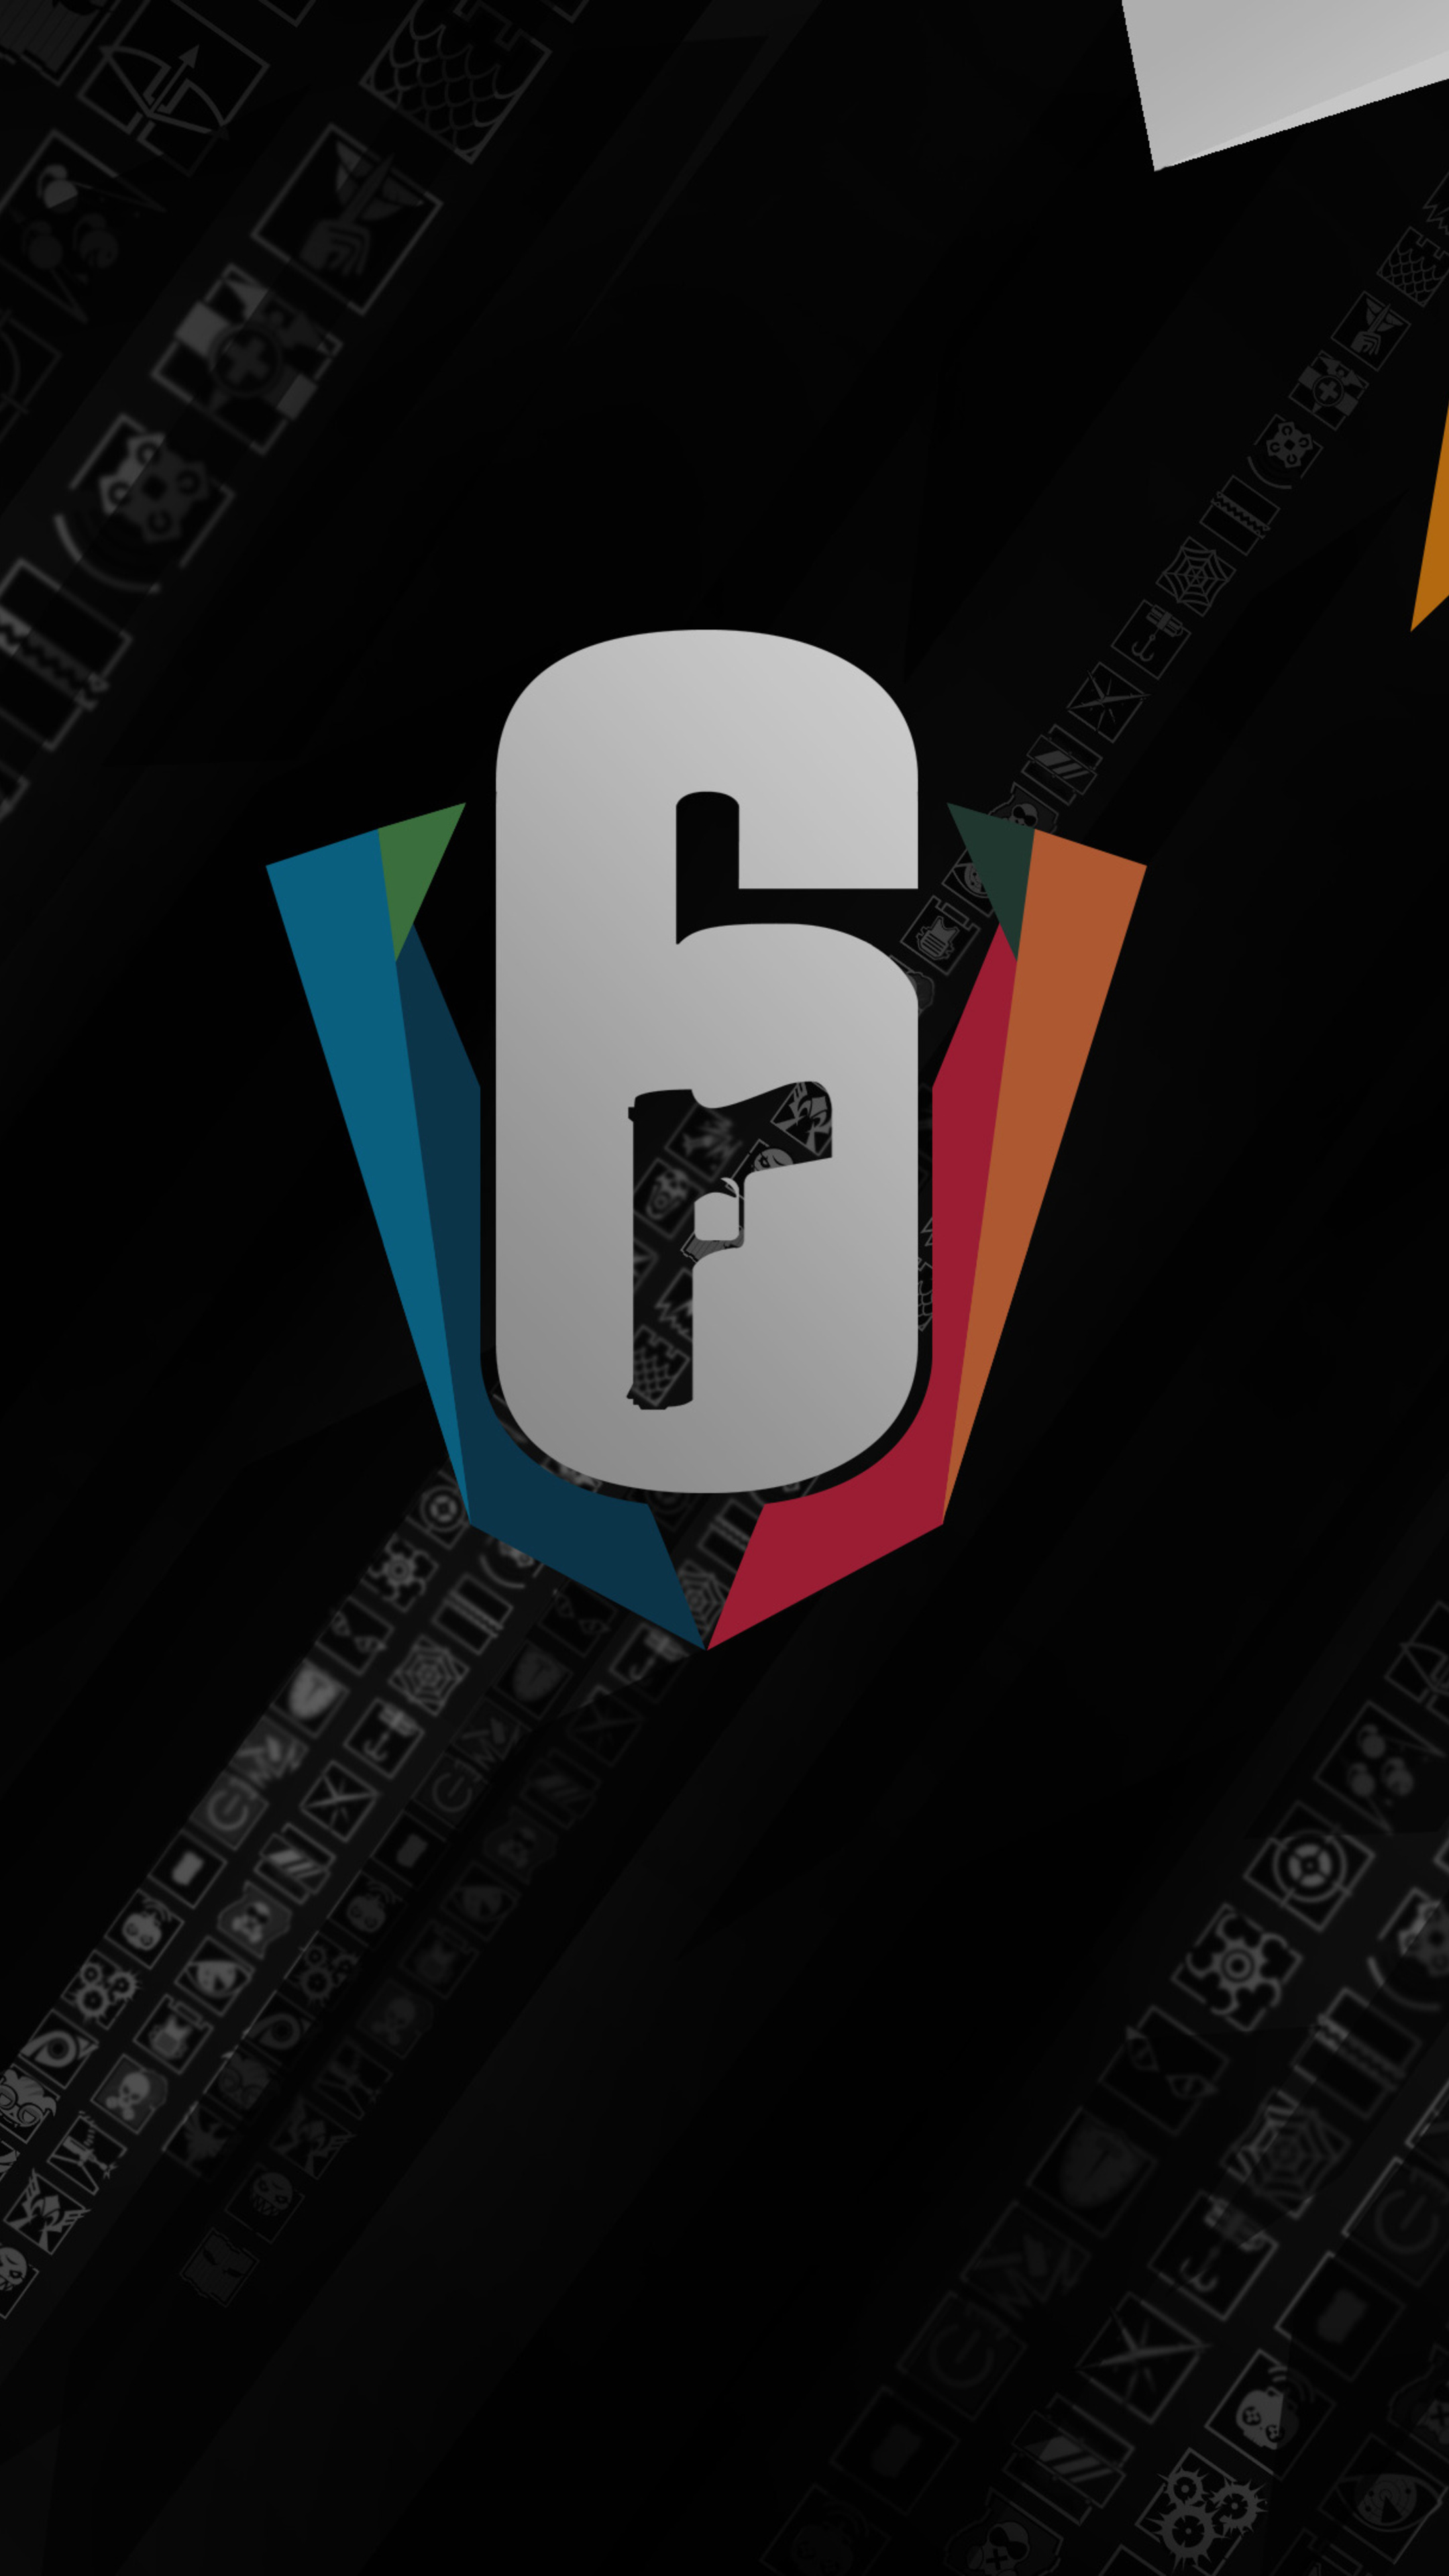 Android Wallpaper 3d Live Pc 2160x3840 Tom Clancys Rainbow Six Siege Pro League Sony